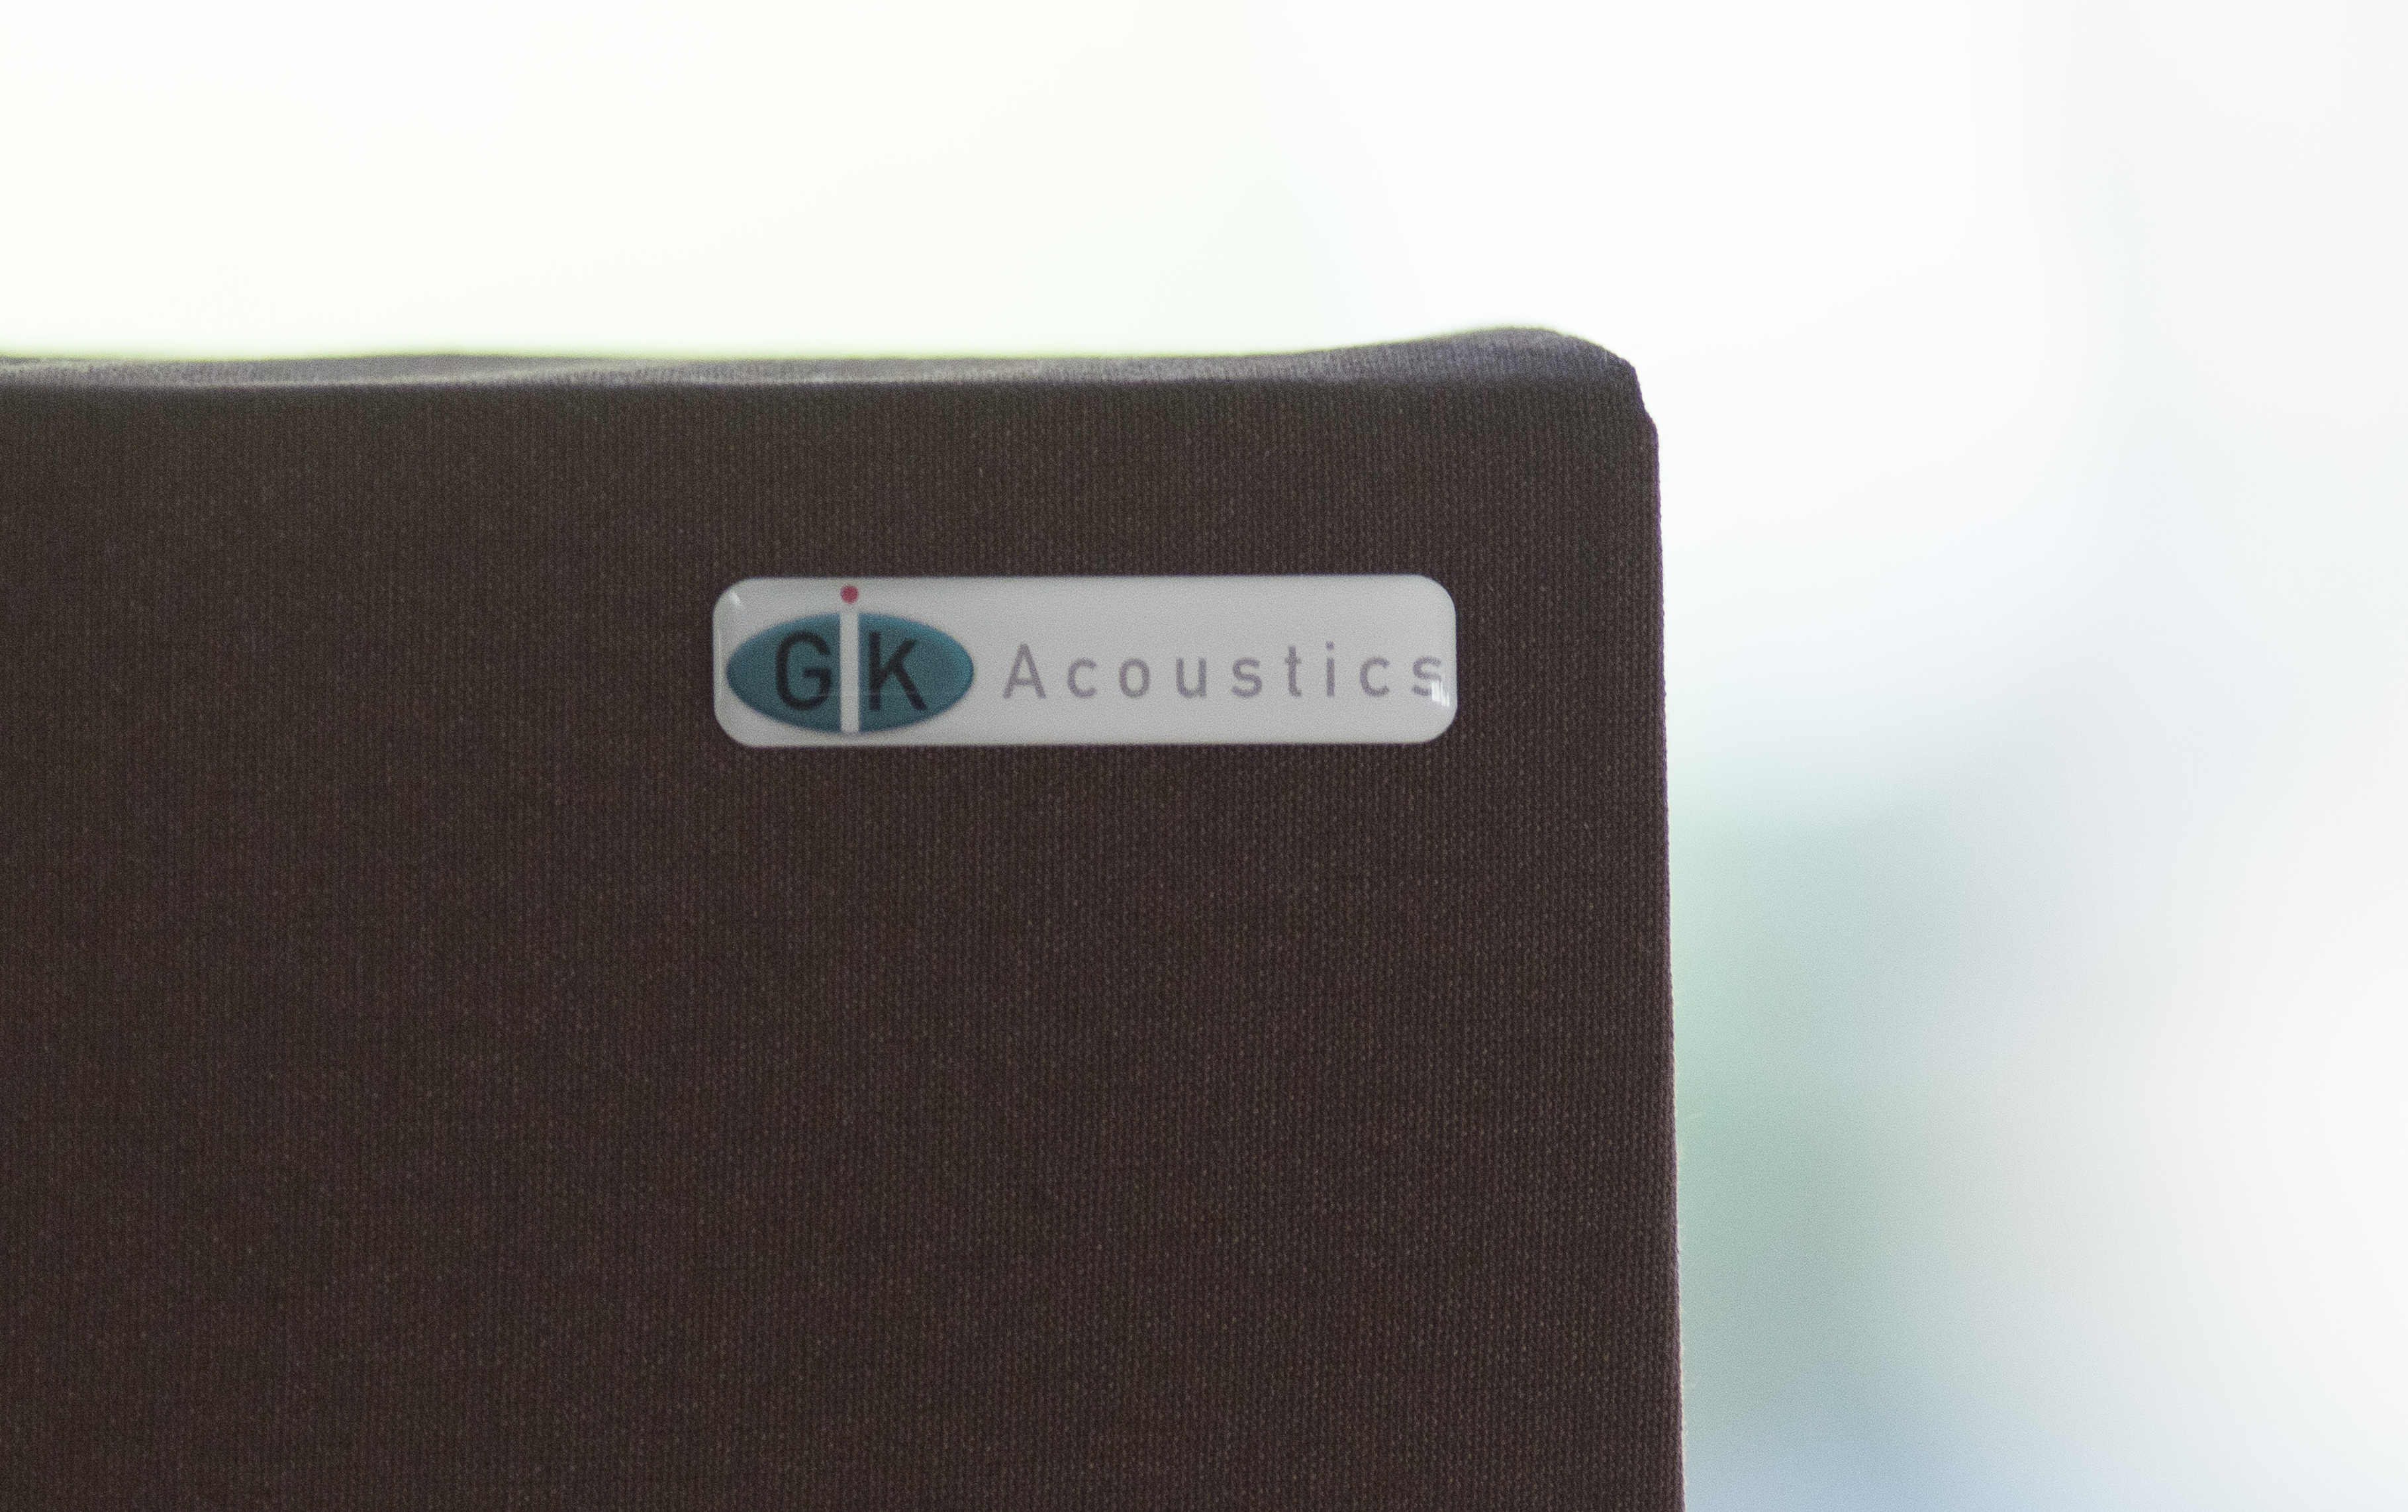 GiK Acoustics 242 Broadband Absorbers & Gobo Review (UPDATED)